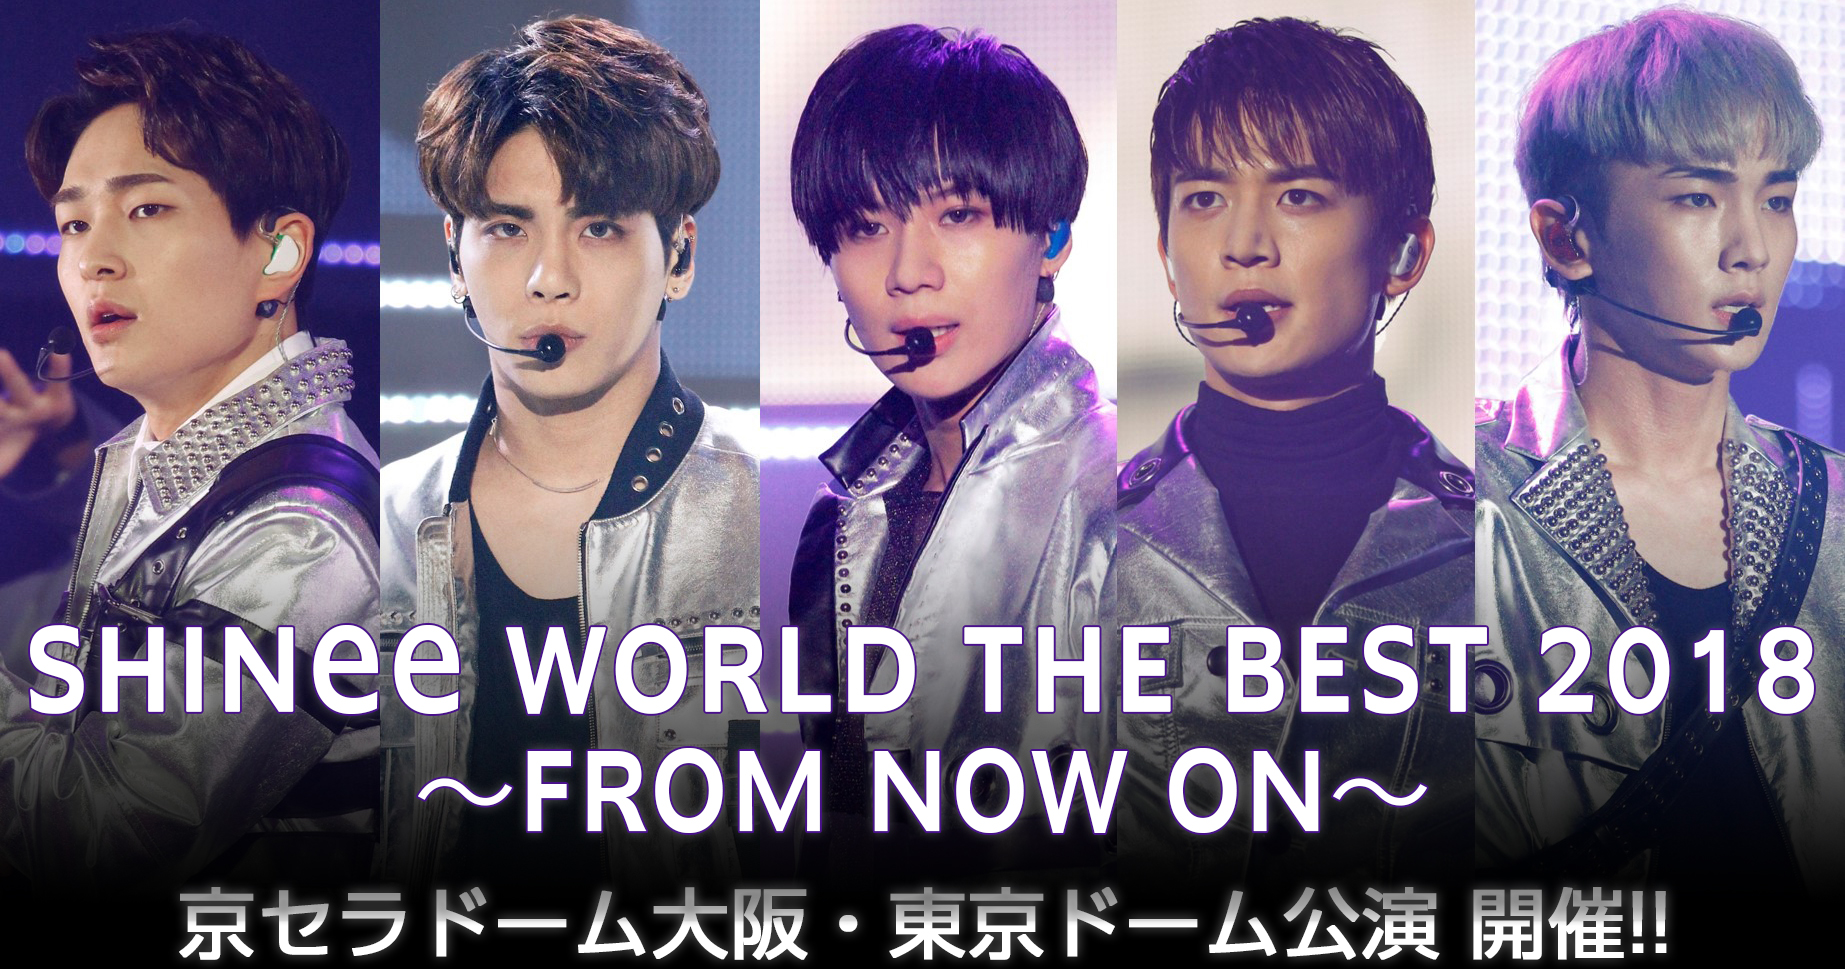 [Concert] SHINee World 2018 THE BEST ~FROM NOW ON~ [2/17~2/27]